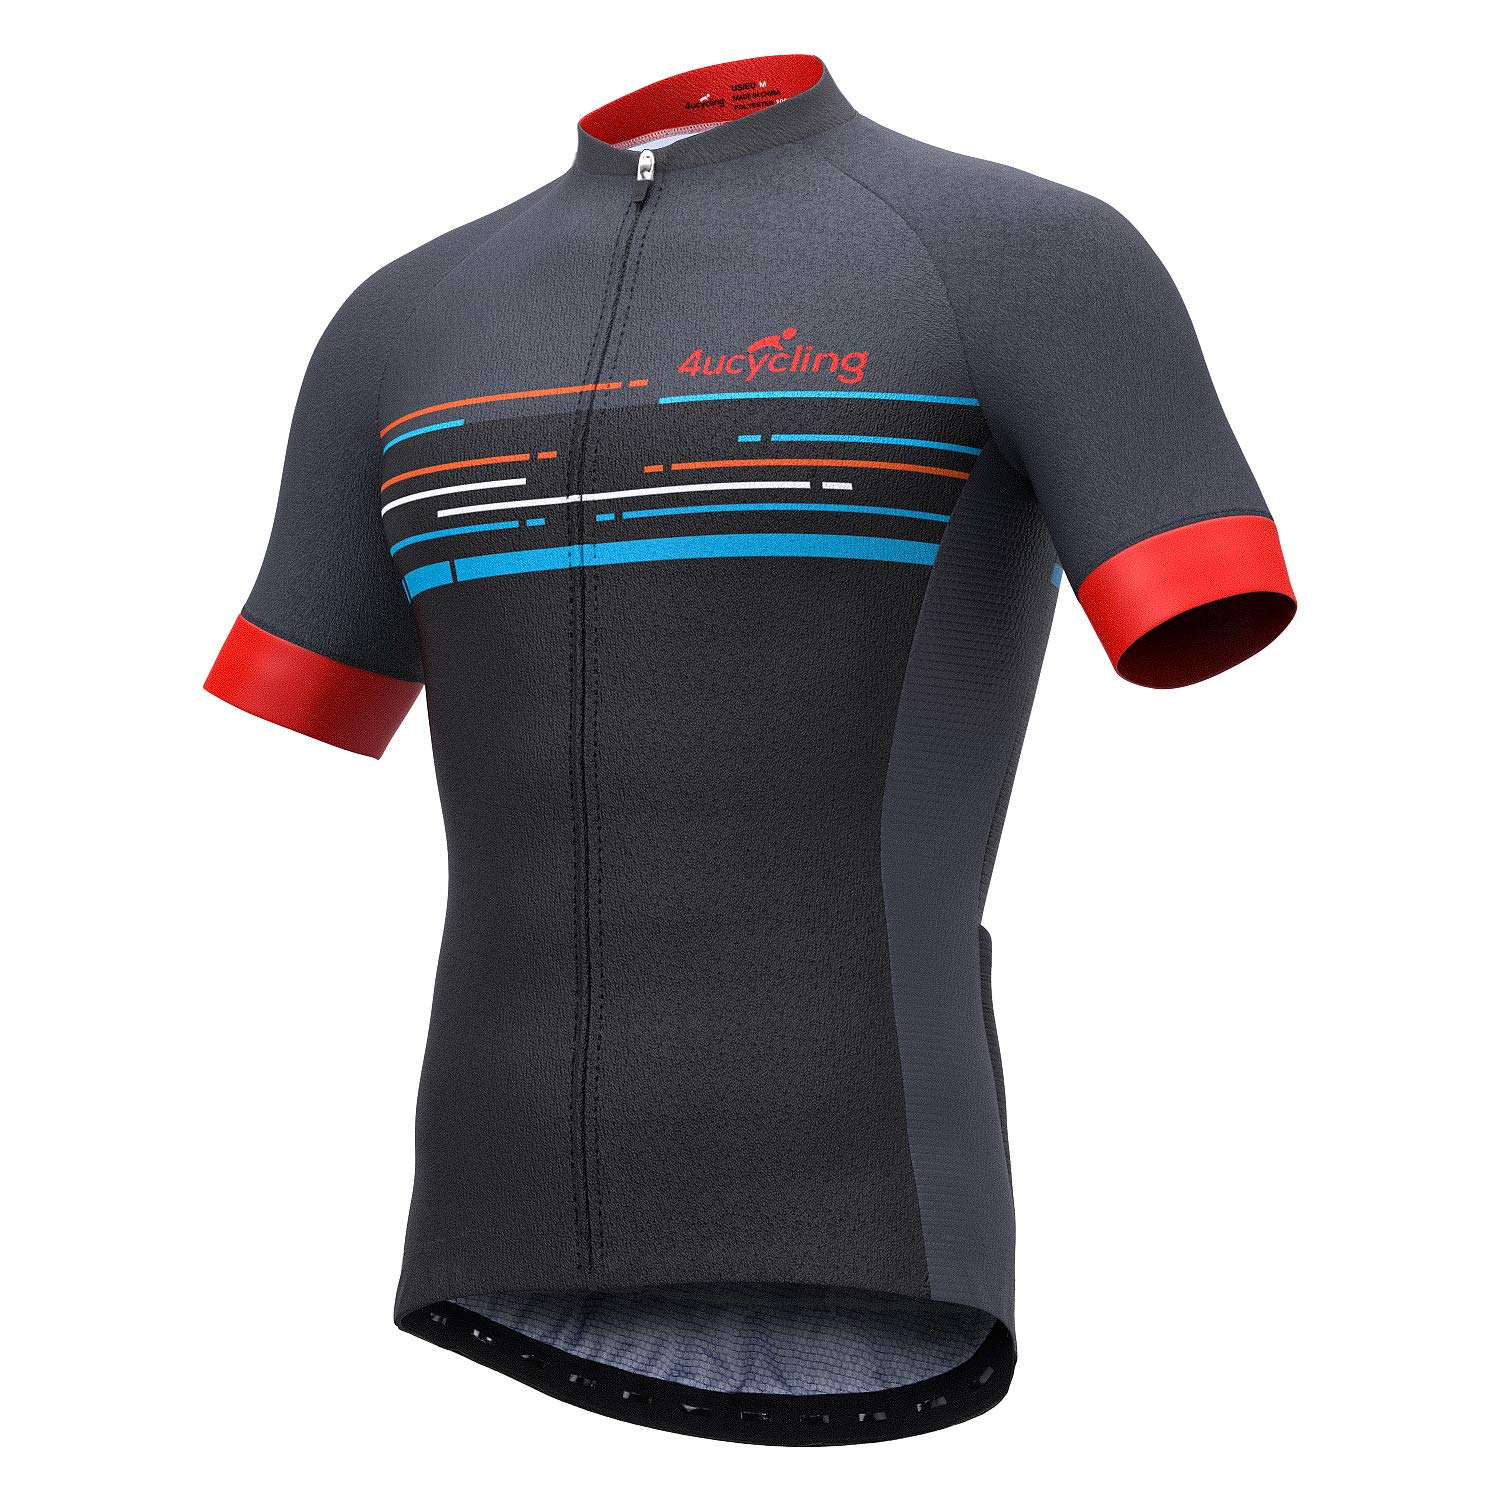 d5095c9df 4ucycling Men s Short Sleeve Cycling Jersey Newest in 2019 with 3 Rear  Pockets - Full Zip